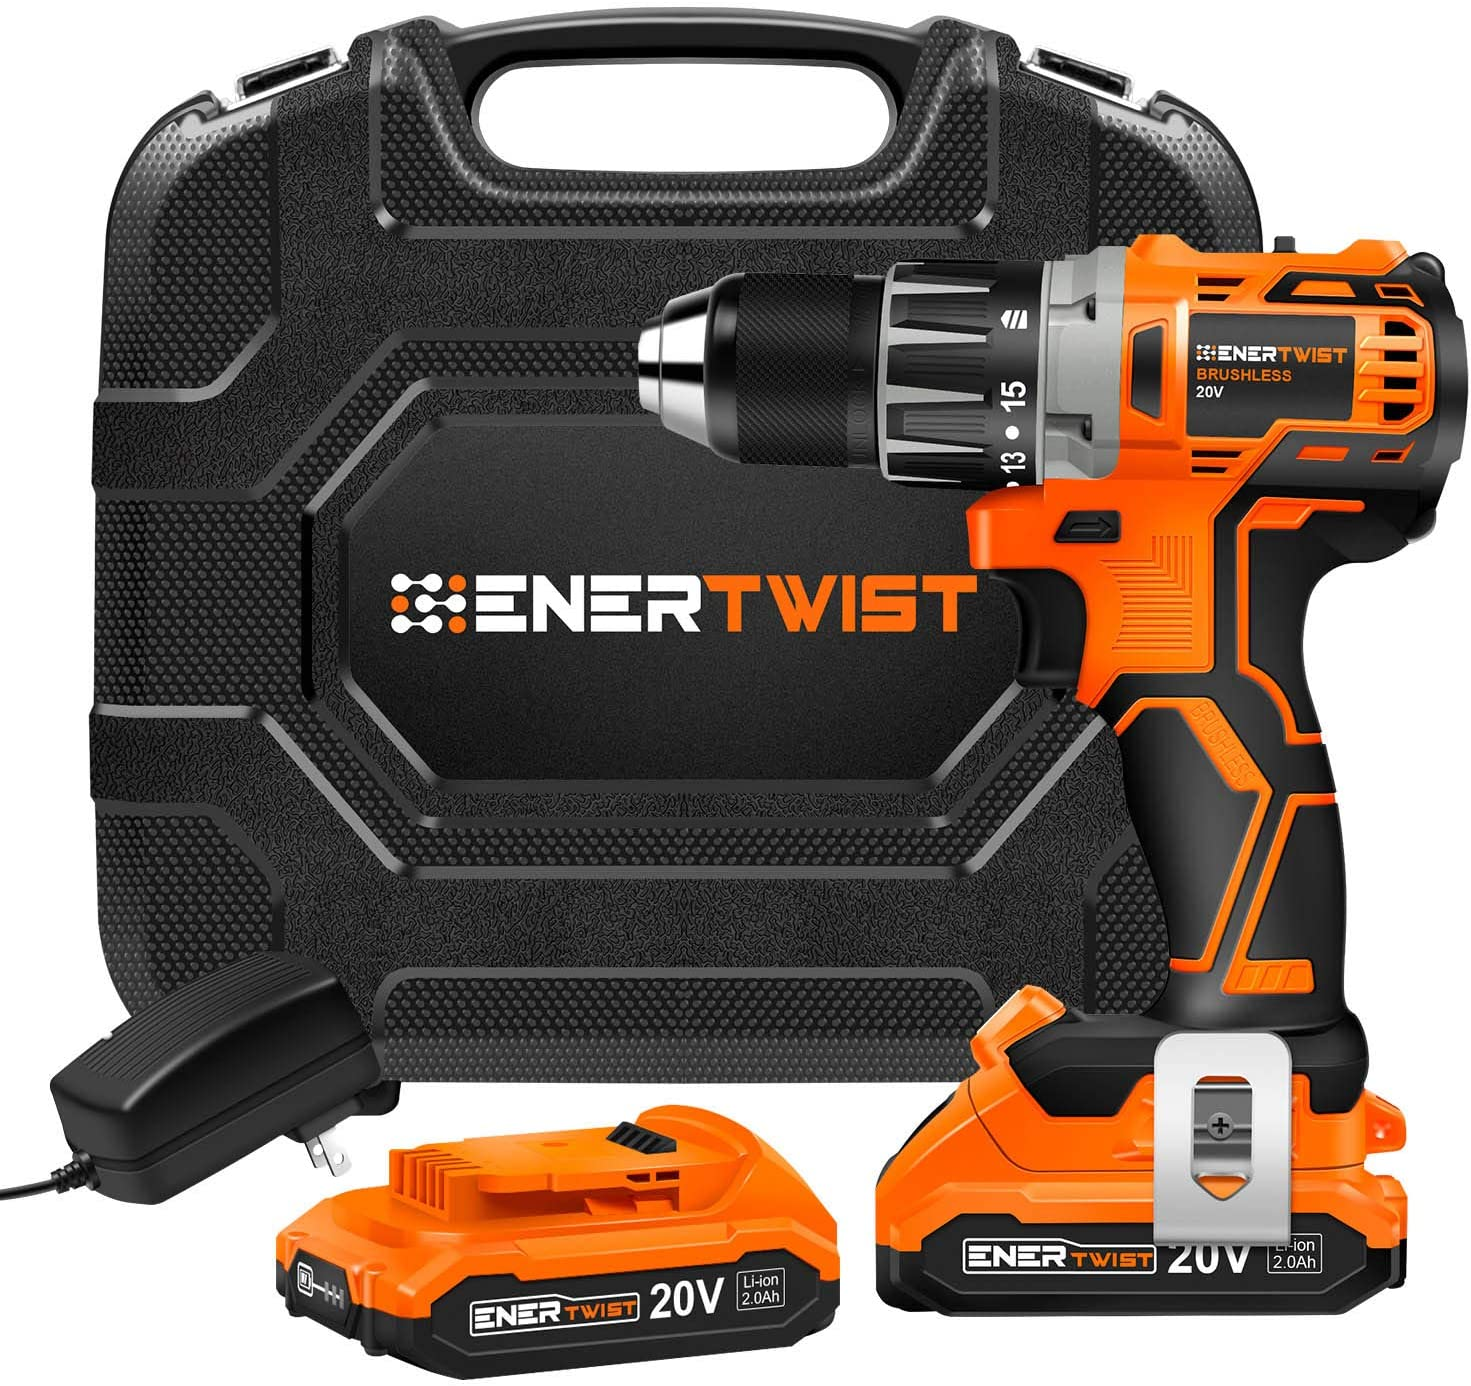 ENERTWIST Cordless Drill, 20V Max Brushless Power Drill Driver Set w/2 Lithium-Ion Batteries and Charger, 442 In-lb Torque, 1/2'' Keyless Chuck, Variable Speed, 16 Position, Built-in LED, Carrying Box